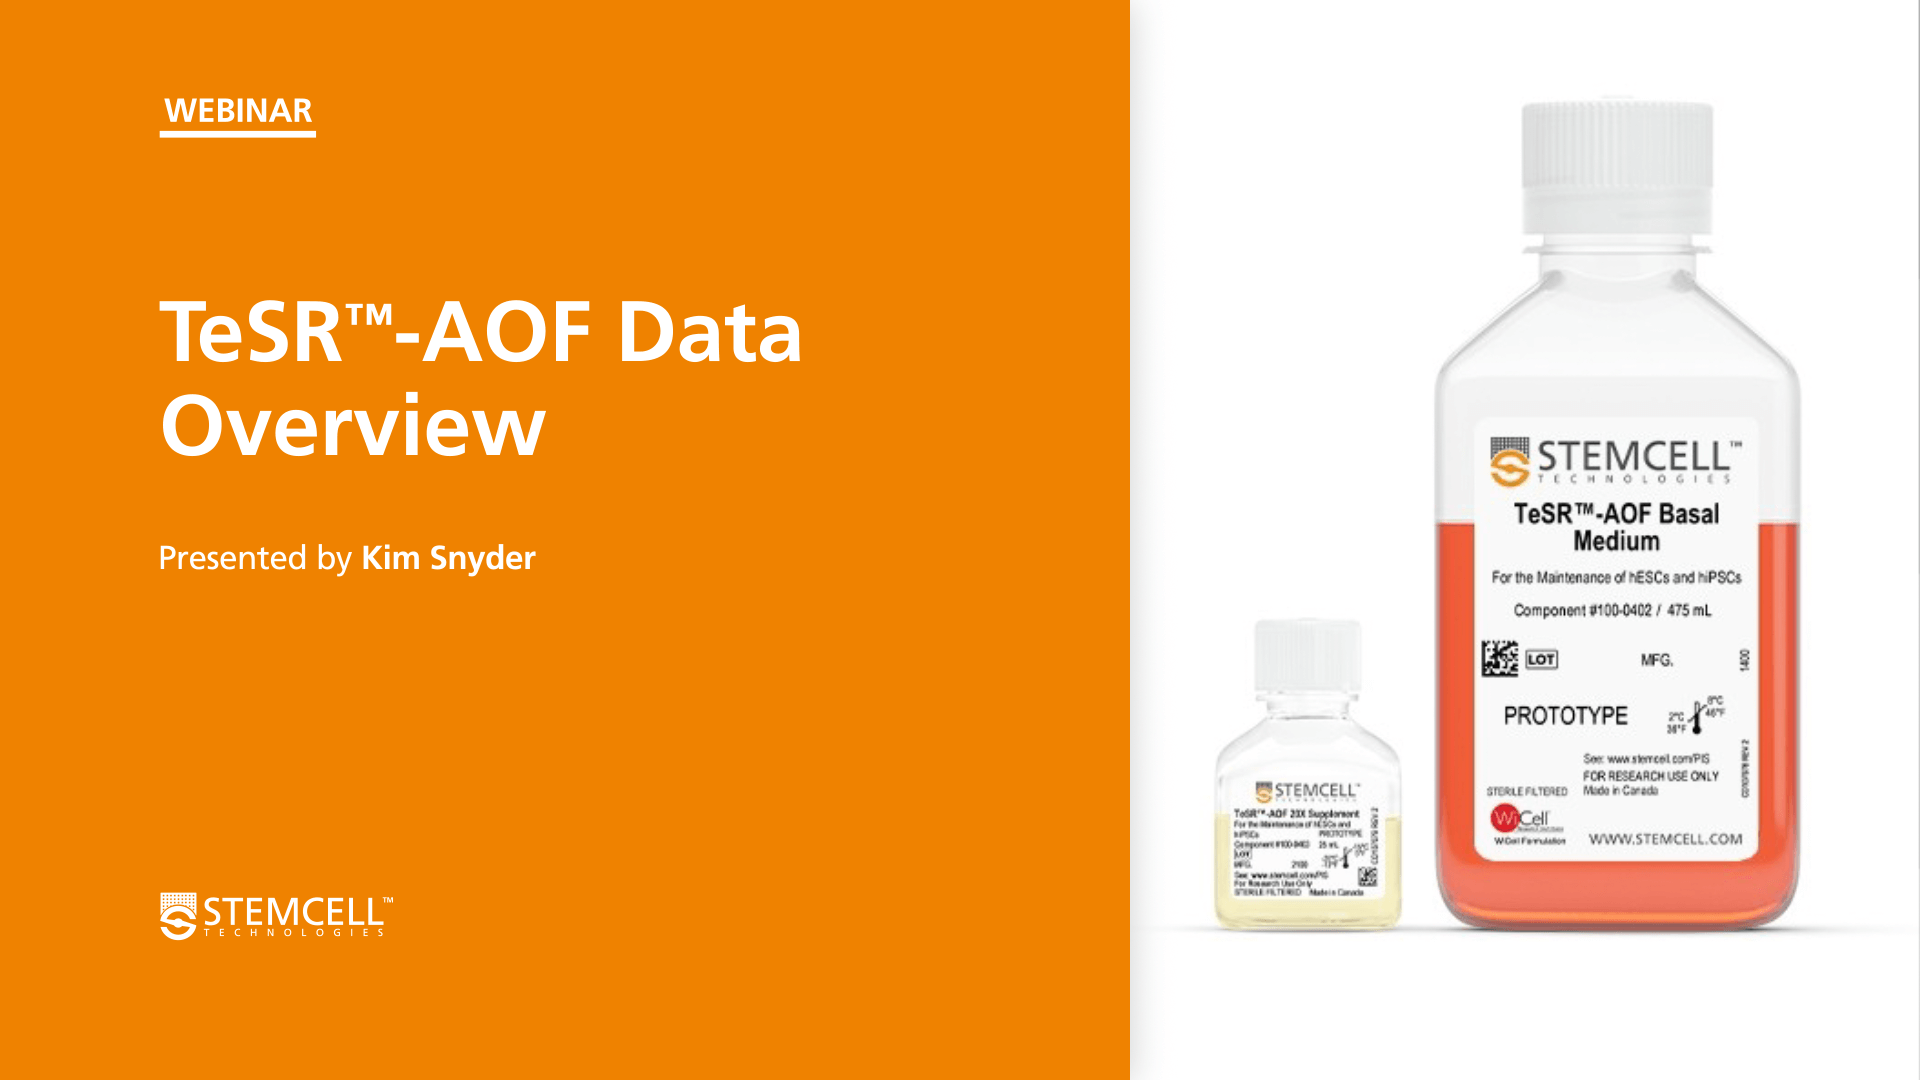 TeSR™-AOF Data Overview